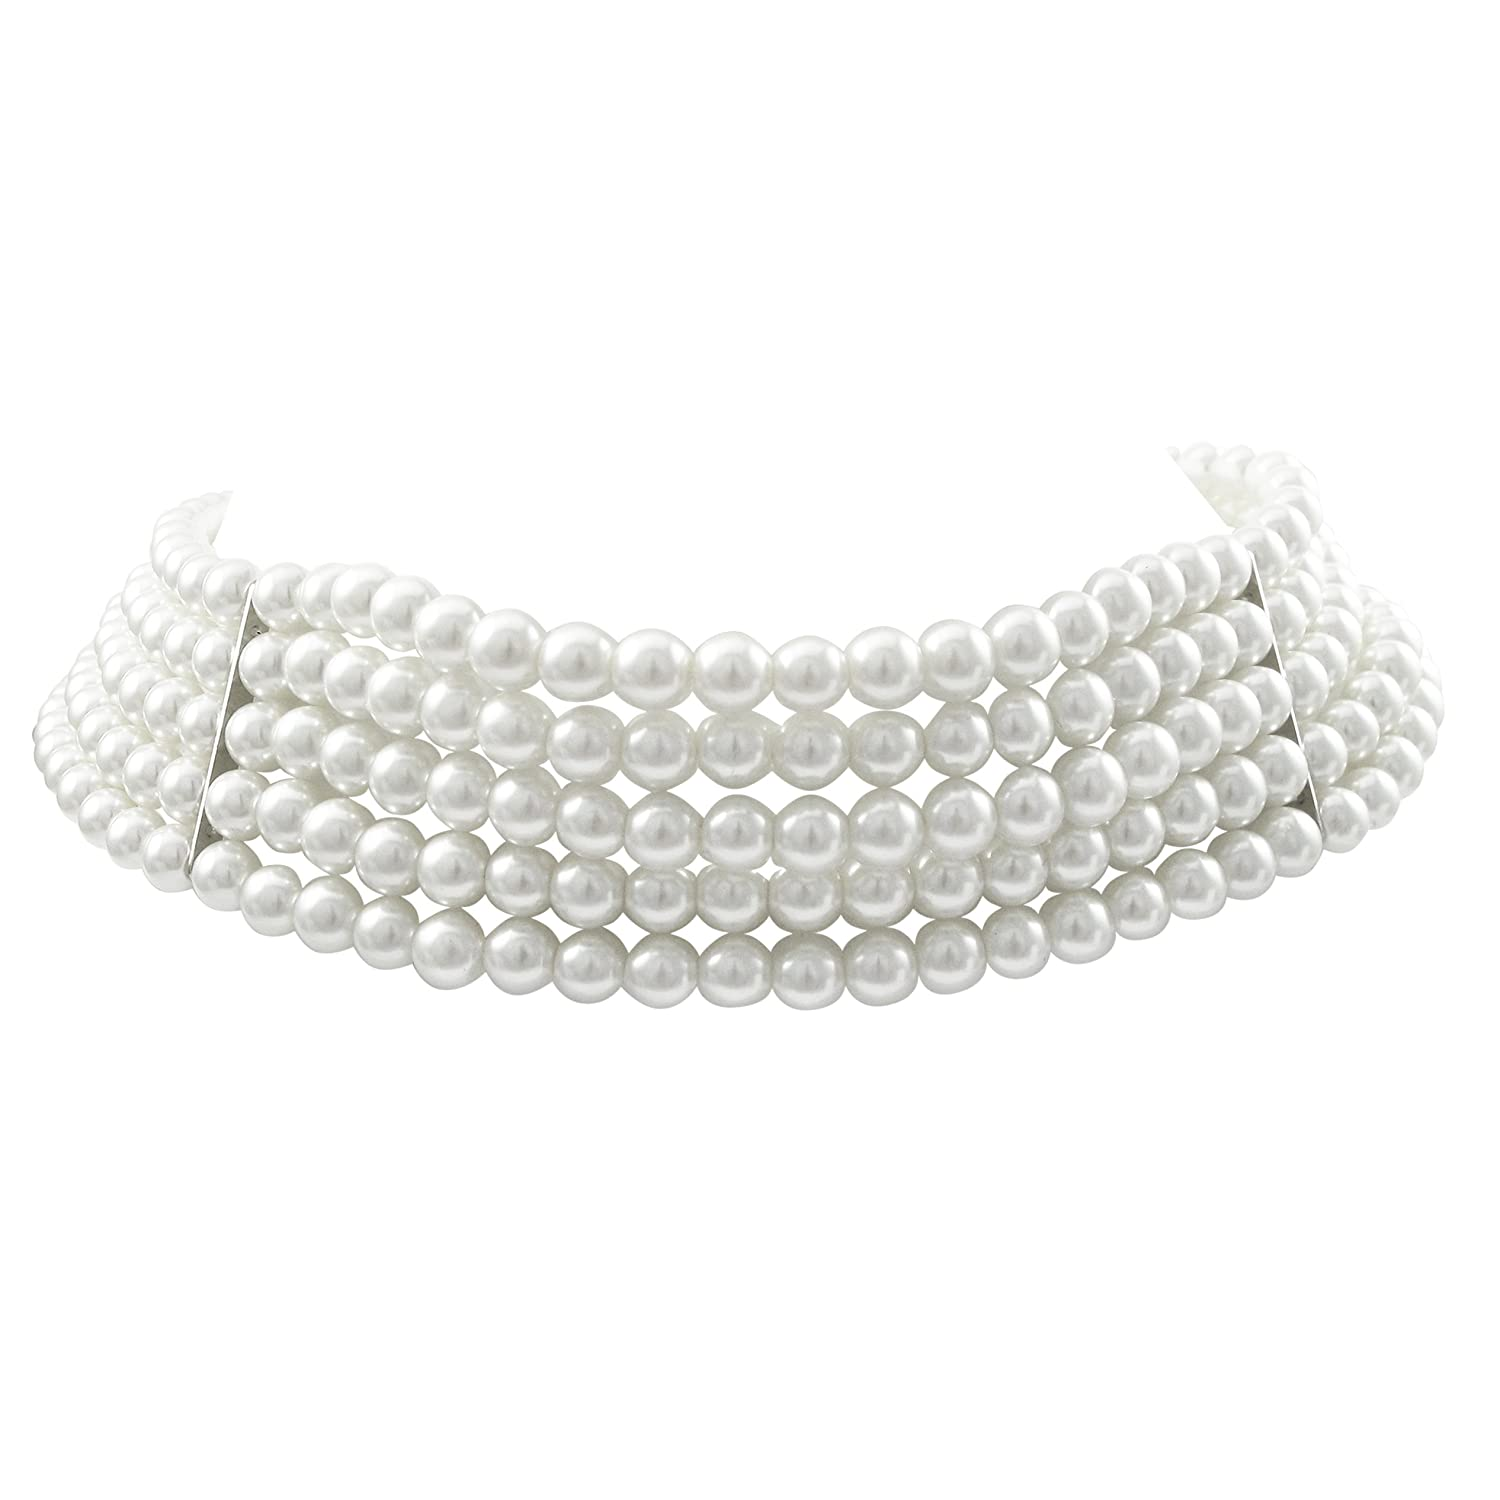 Isaac Kieran Rhodium Finish 6-mm White Faux Pearl 5-Strand Choker Necklace, 13+3